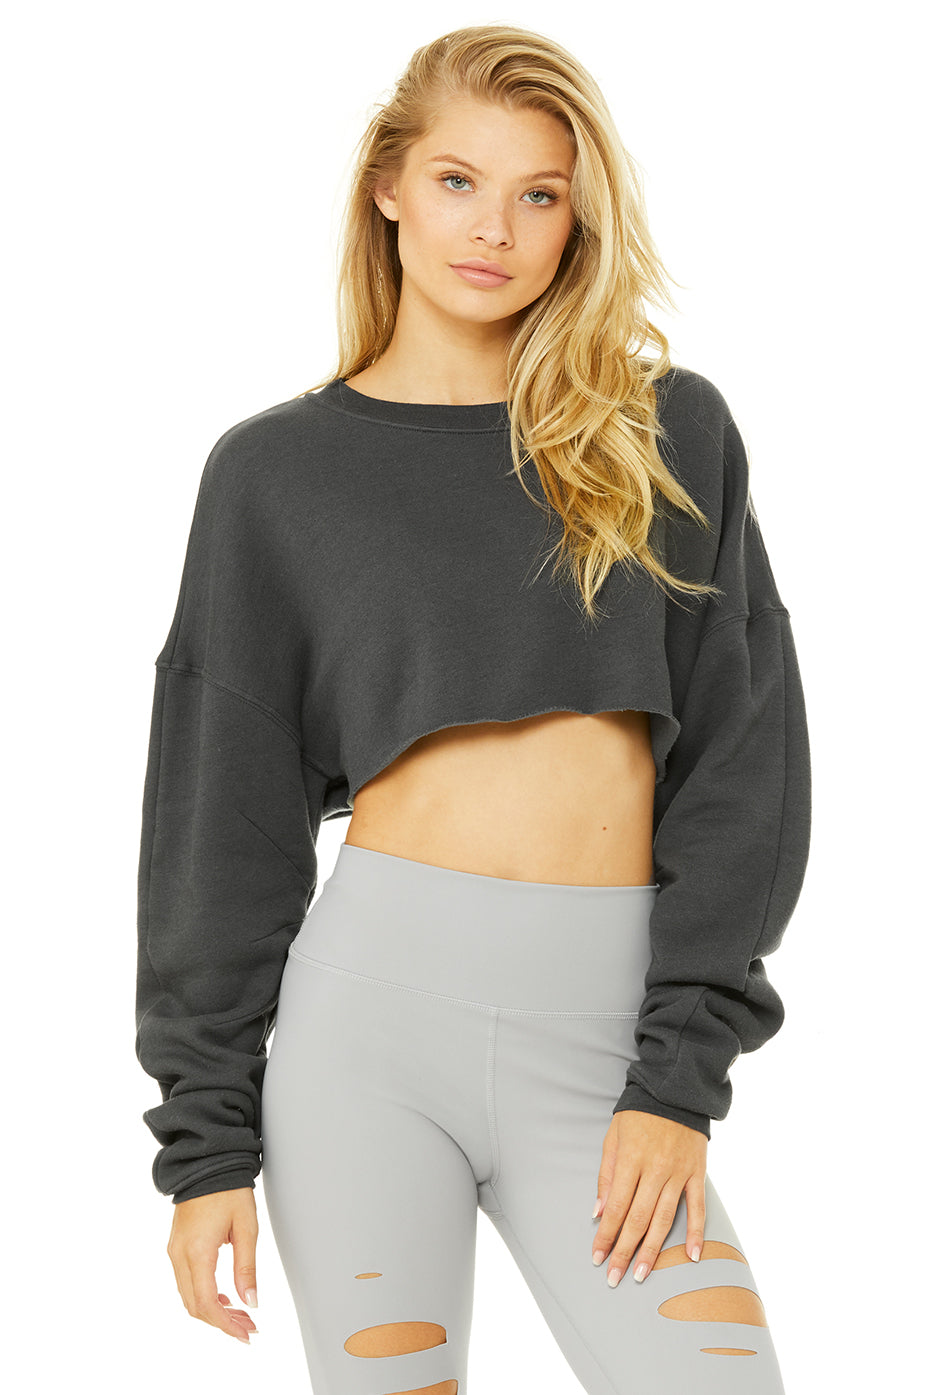 Limited-Edition Exclusive Extreme Crop Crew Neck